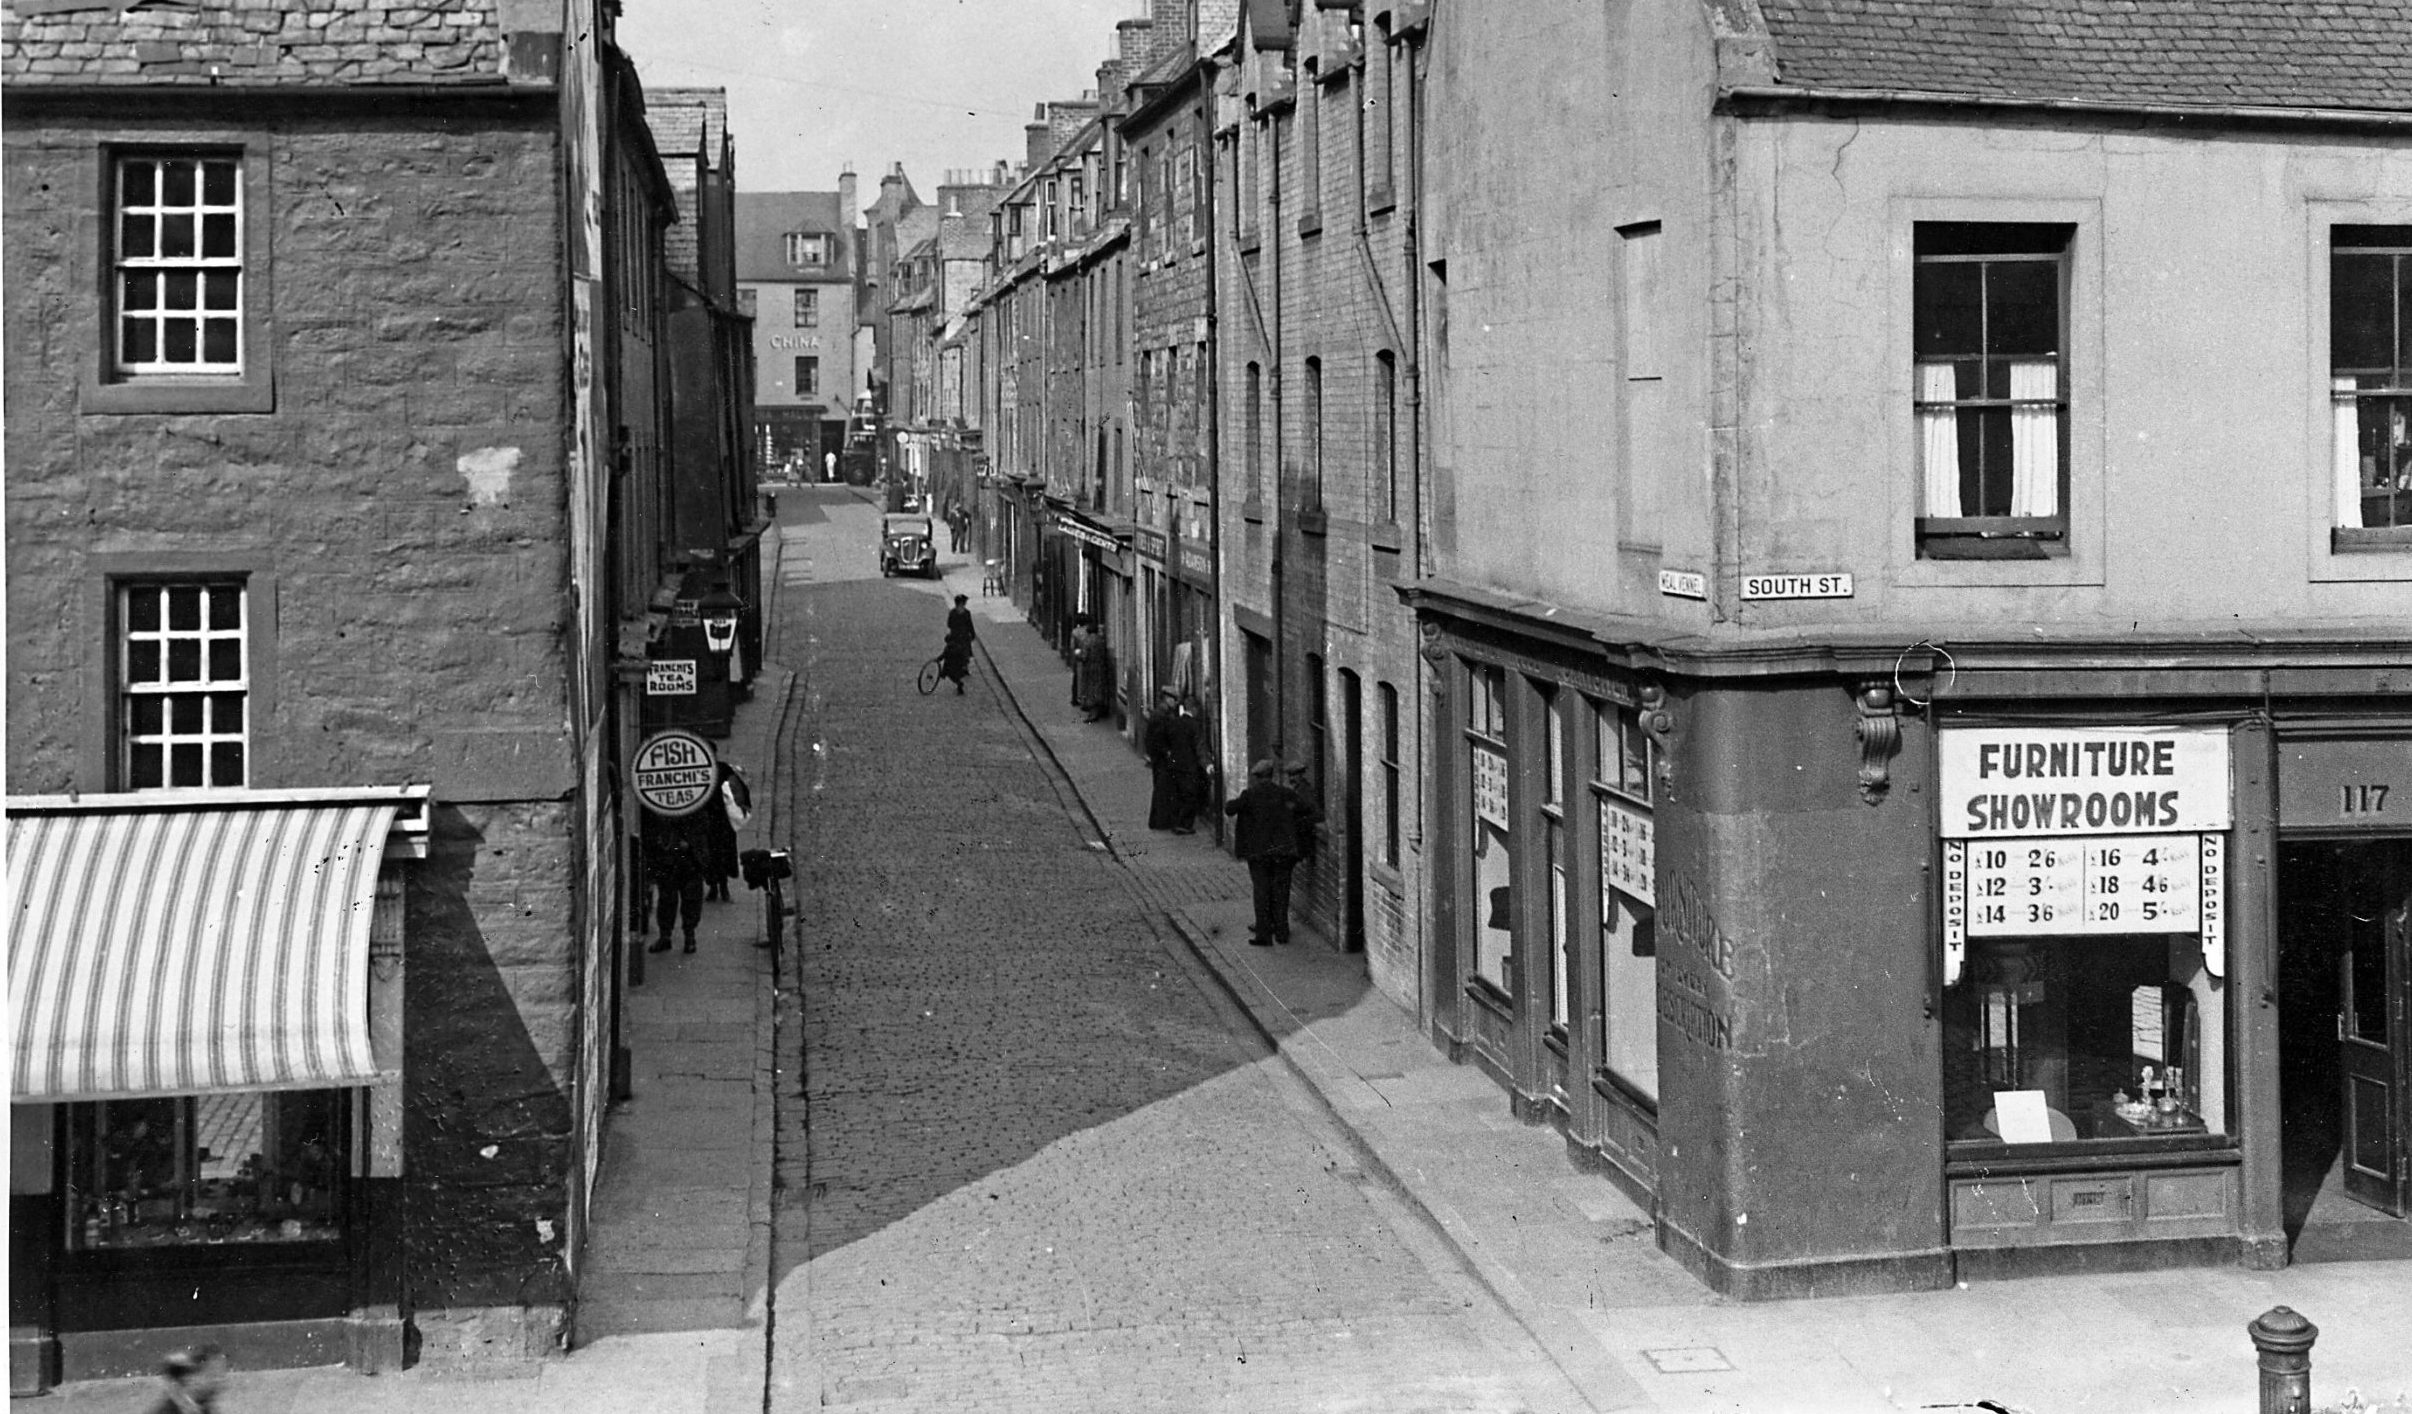 Meal Vennel in Perth where Black Jean lived and died.